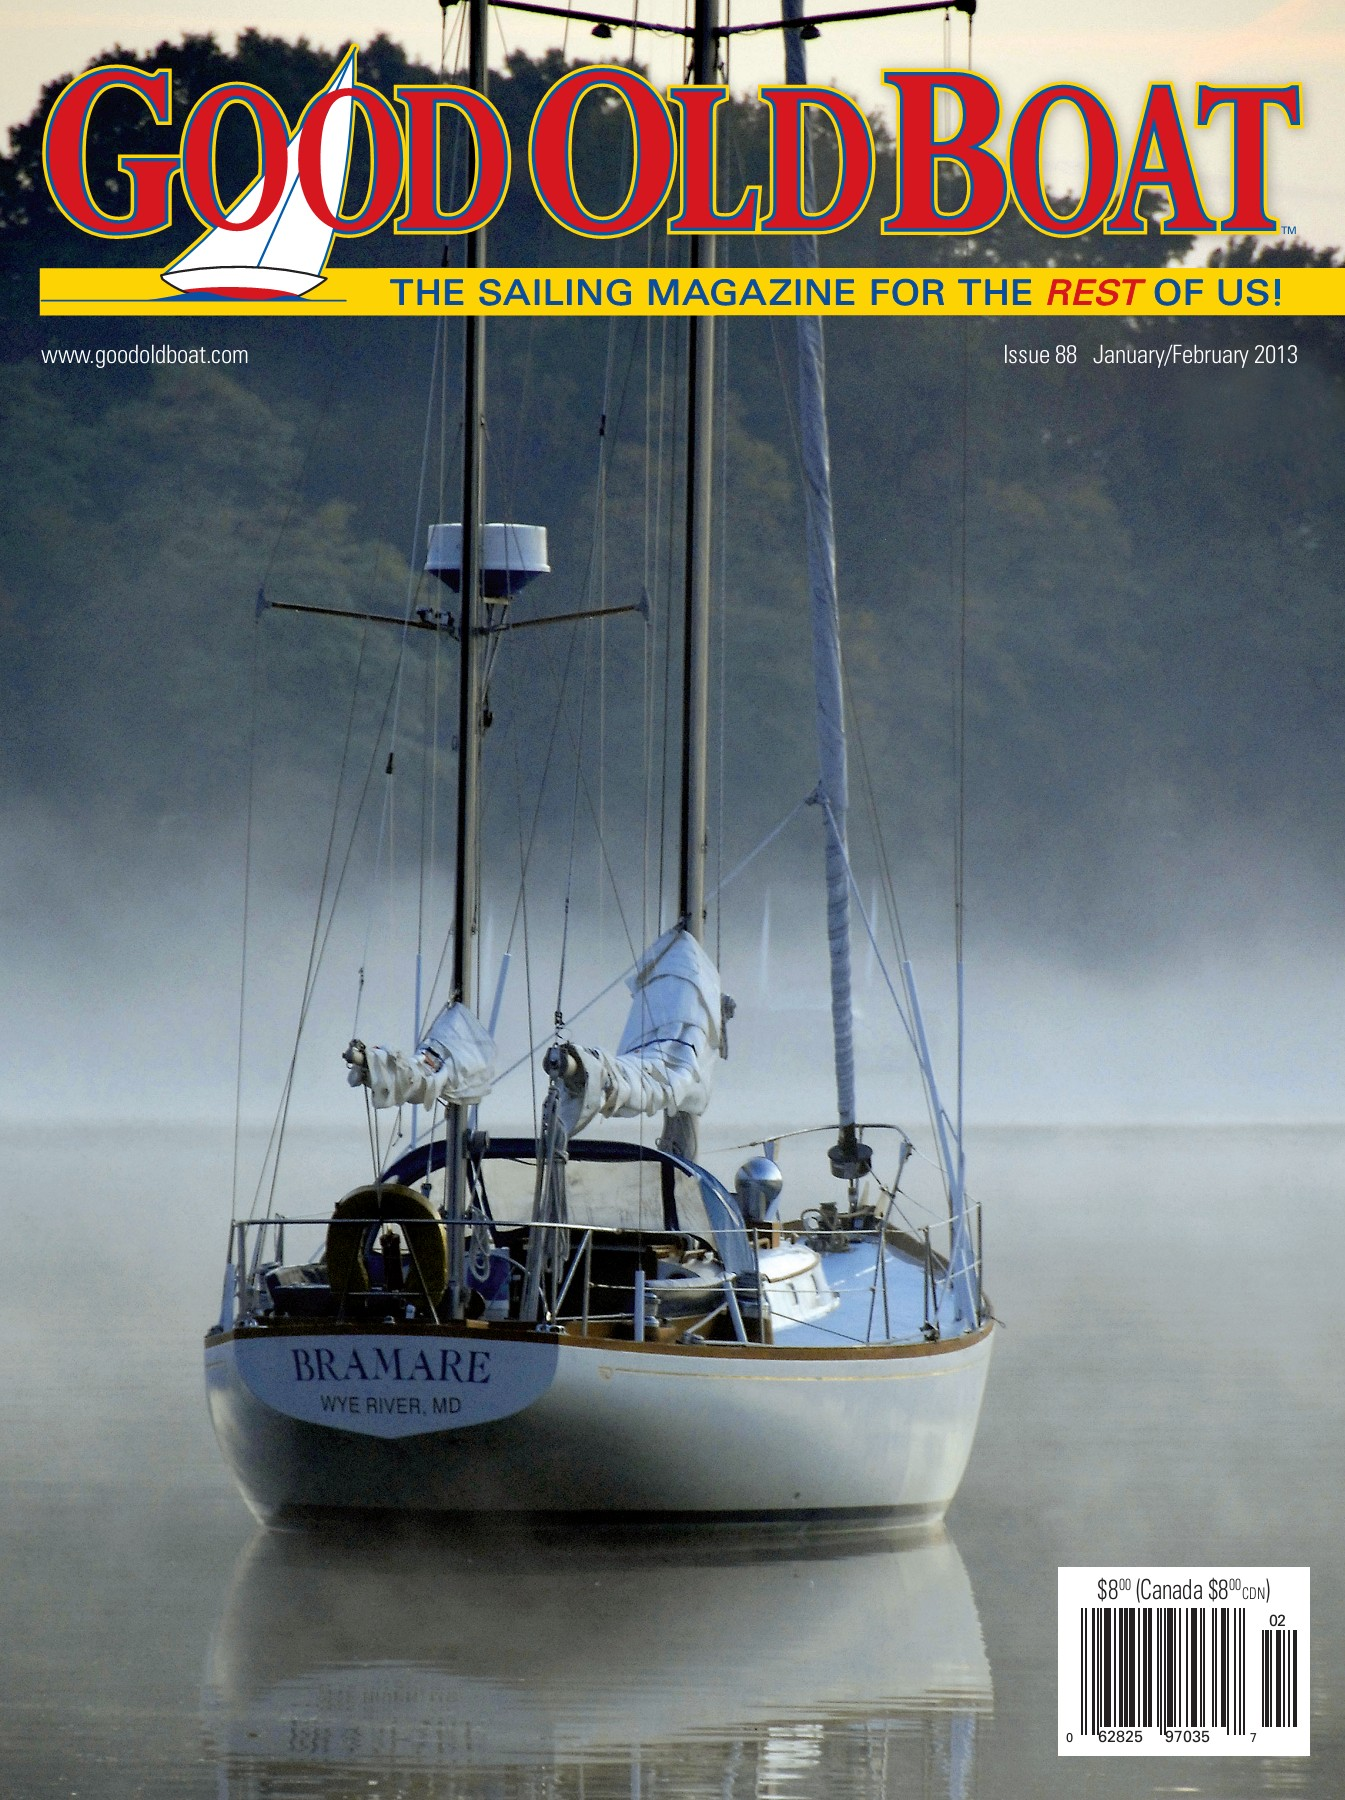 TM - Good Old Boat Pages 1 - 6 - Text Version | AnyFlip